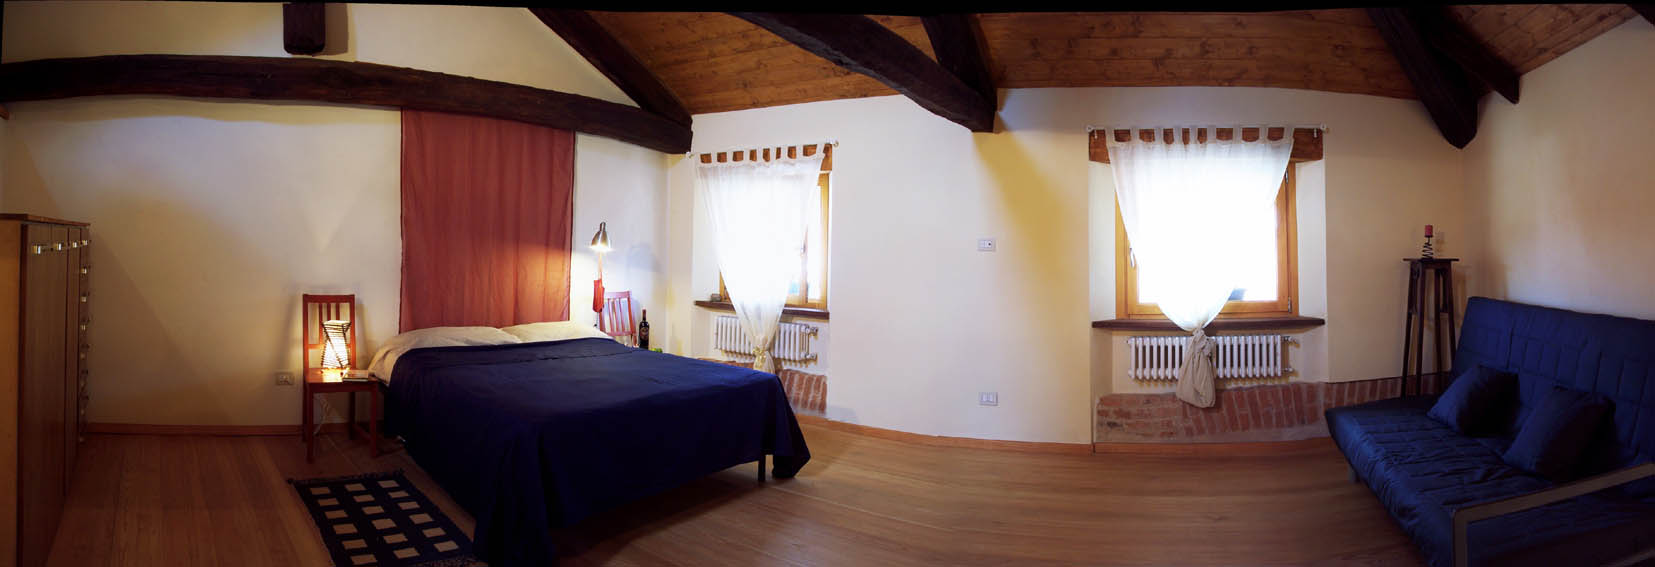 Casa Prosit, Asti, Italy, find me the best hostels and places to stay in Asti